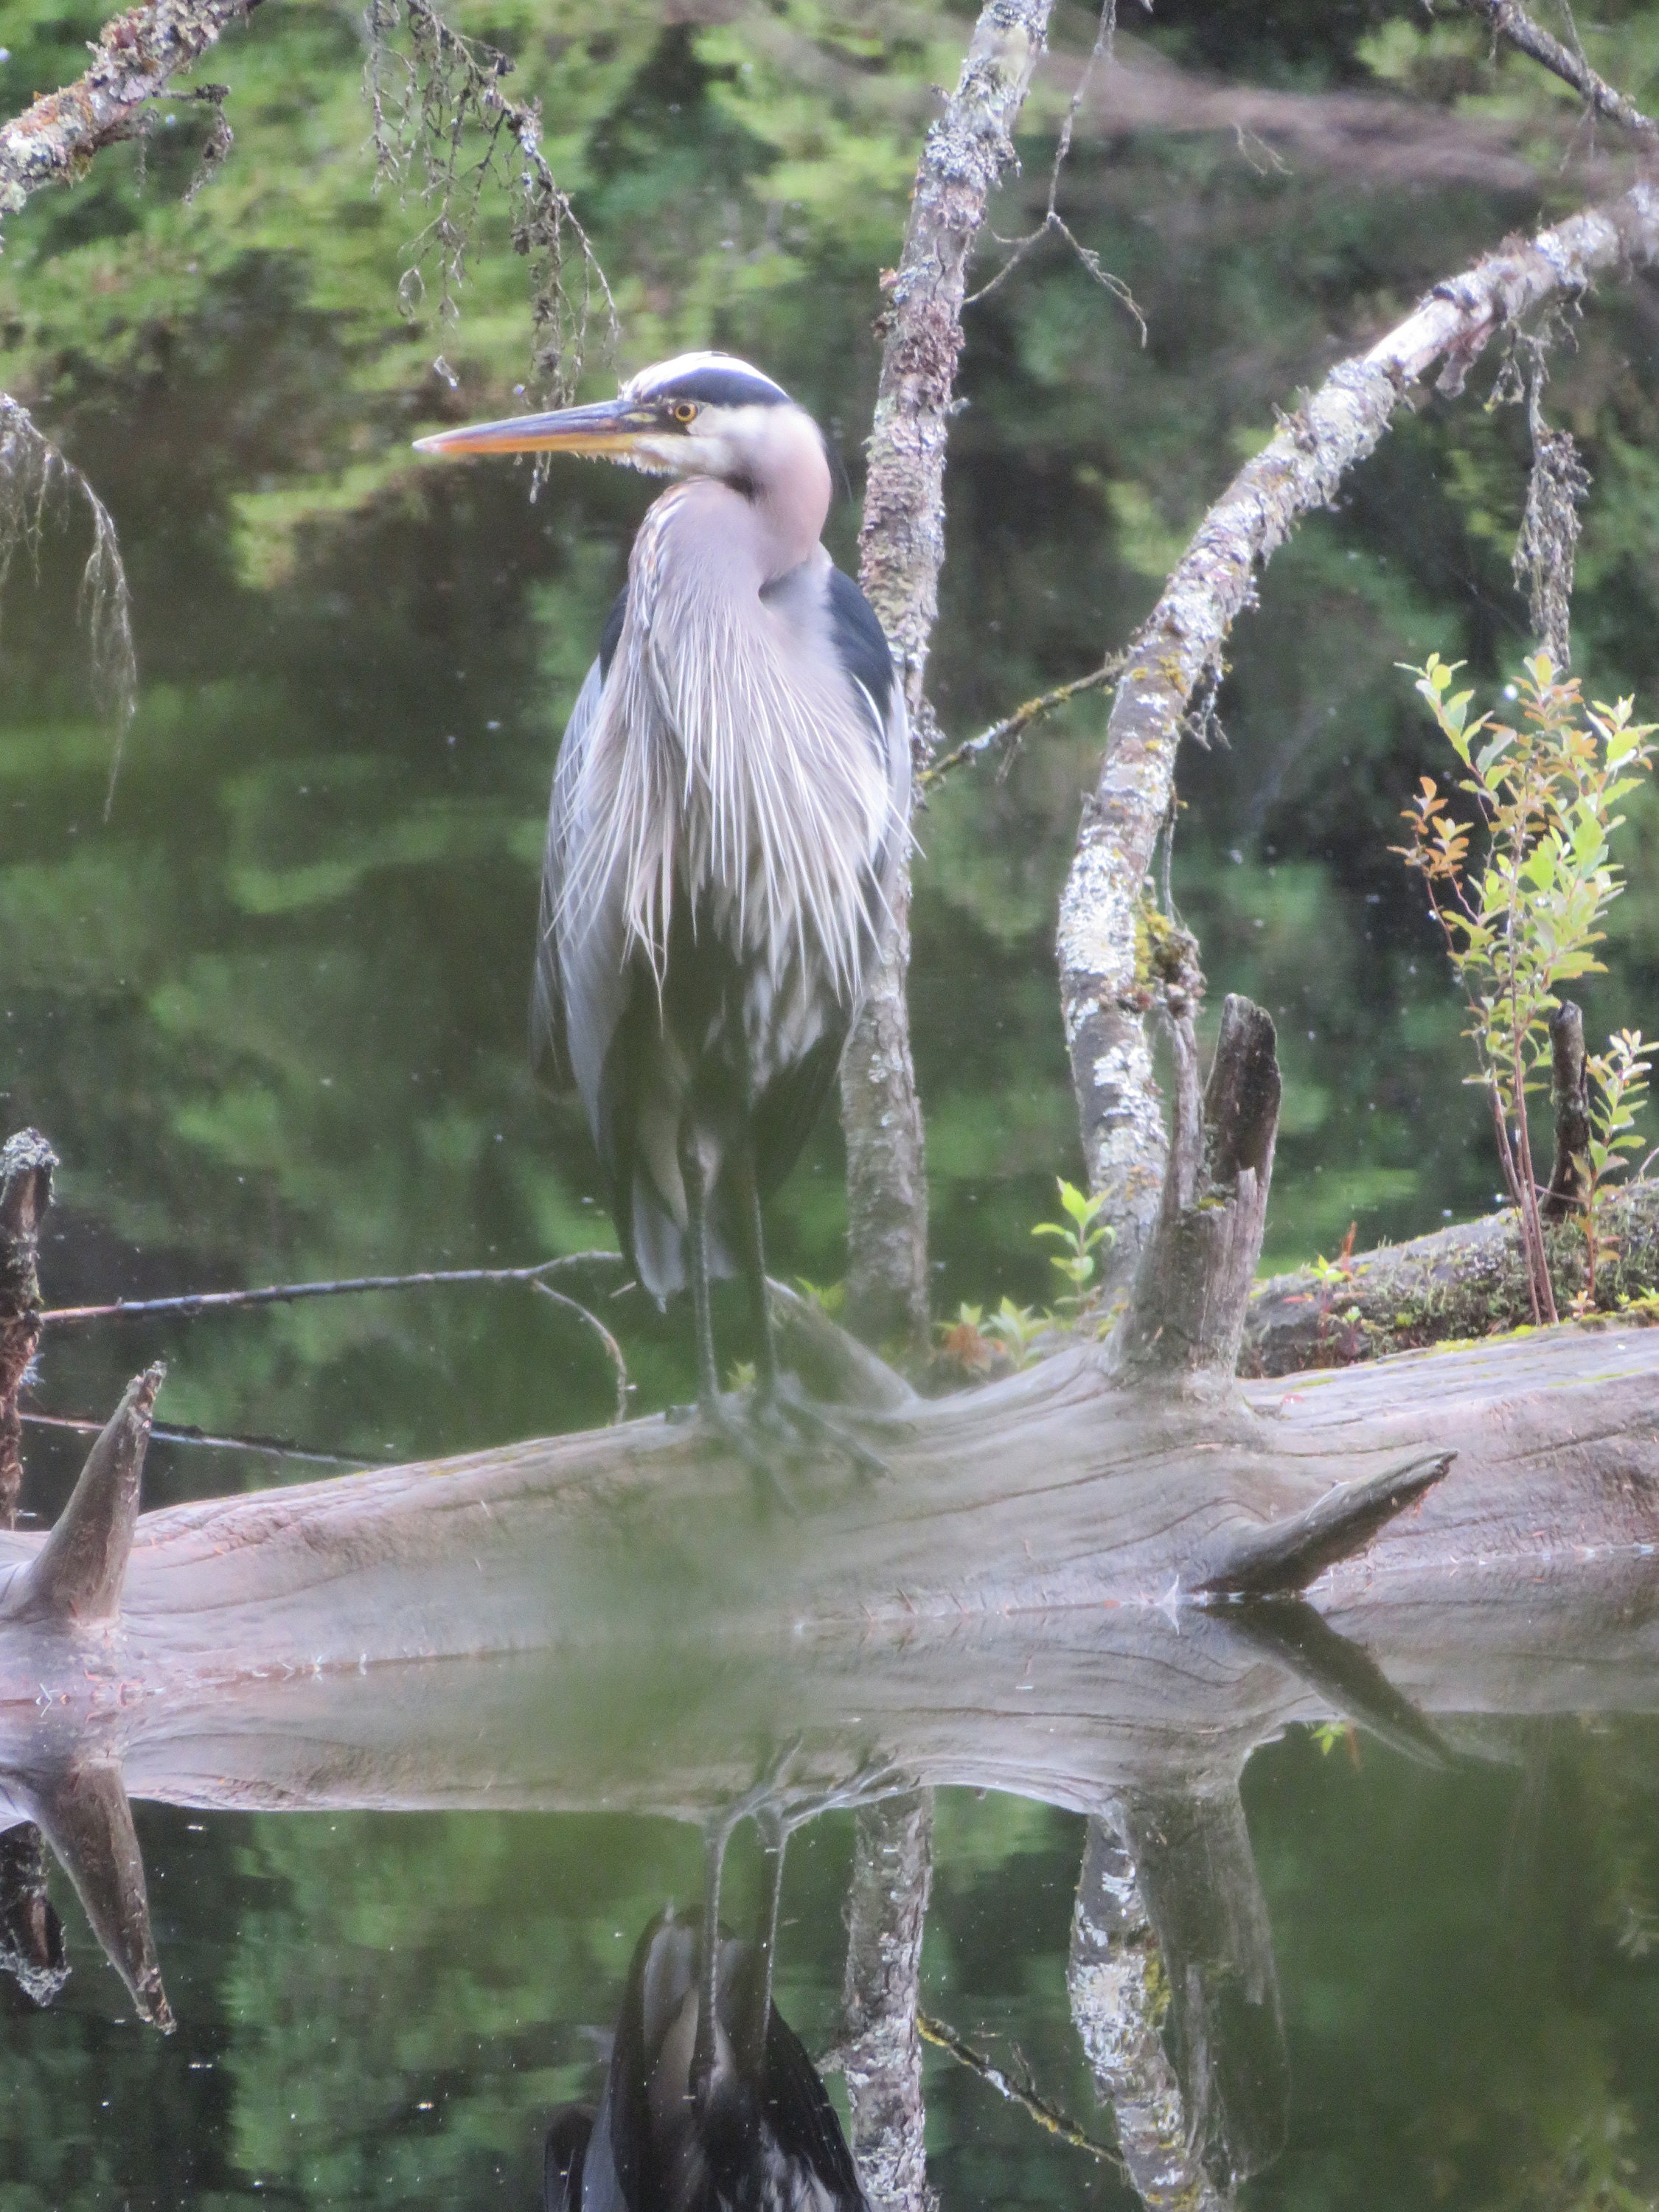 Photo of heron by hubby for cover of Le fleuve sans bouche